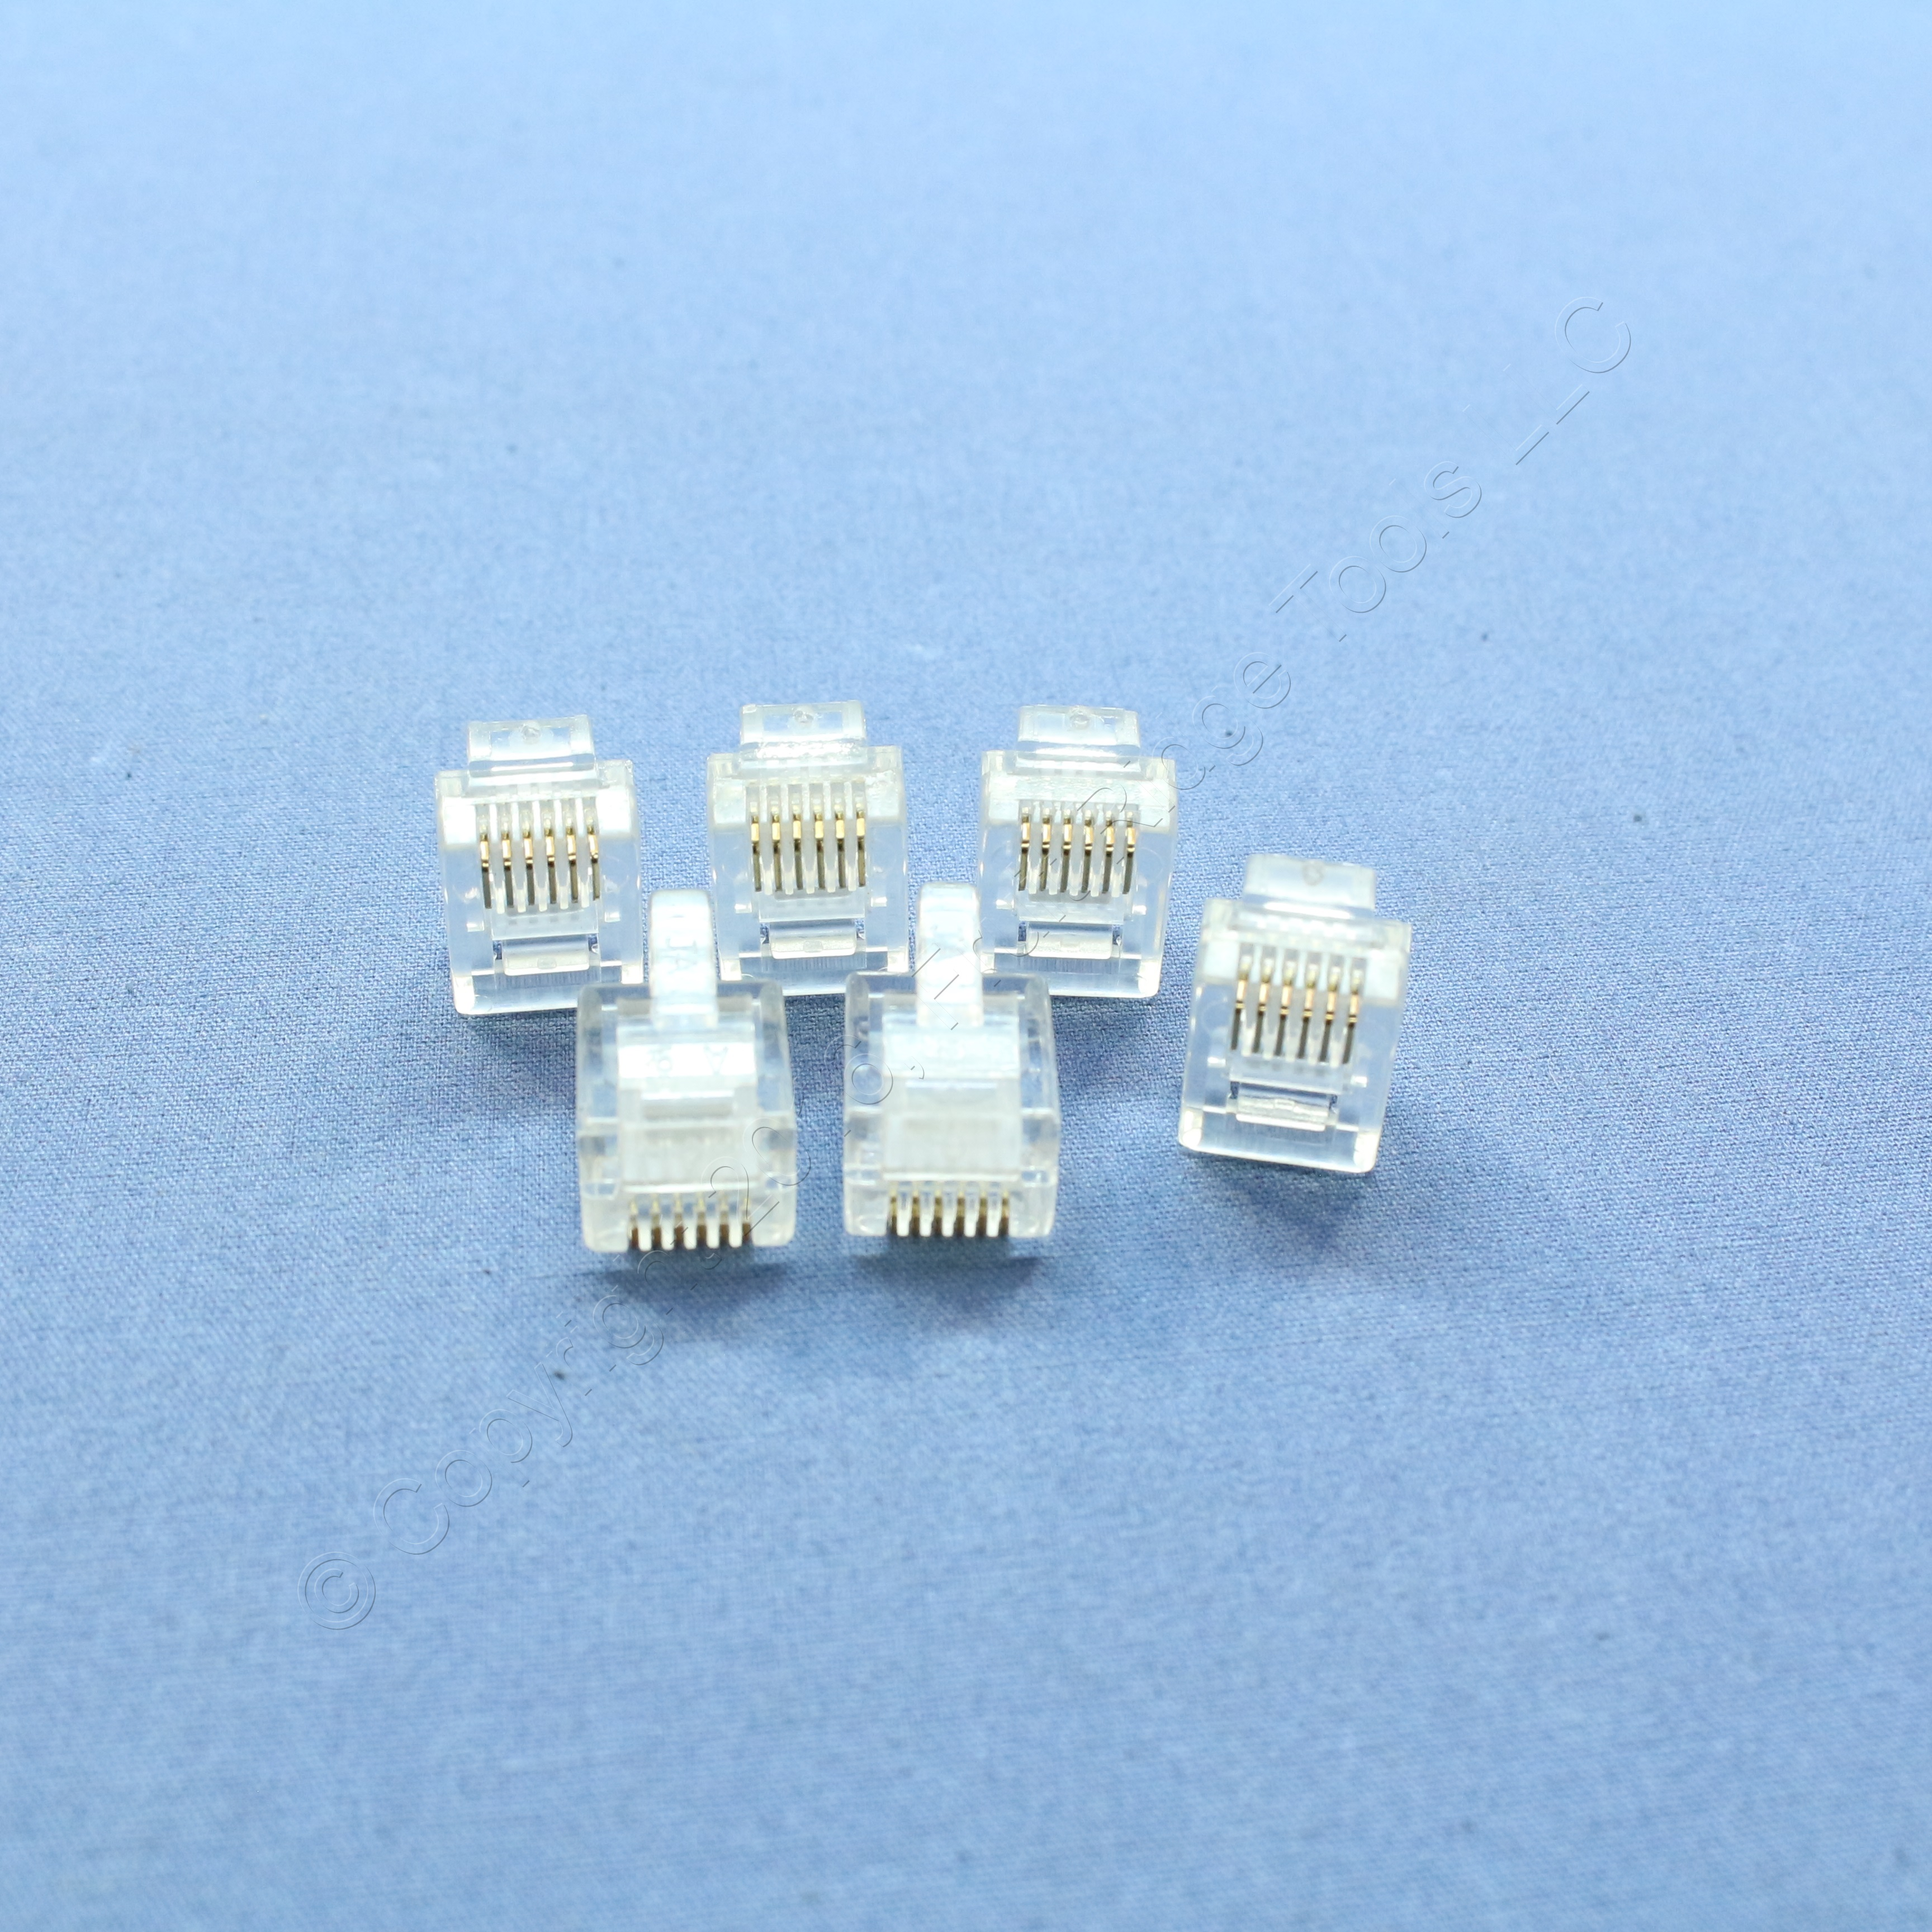 6 New Leviton Replacement Telephone Line Cord Plug Ends Rj12 Modular Wiring A End Phone C2696